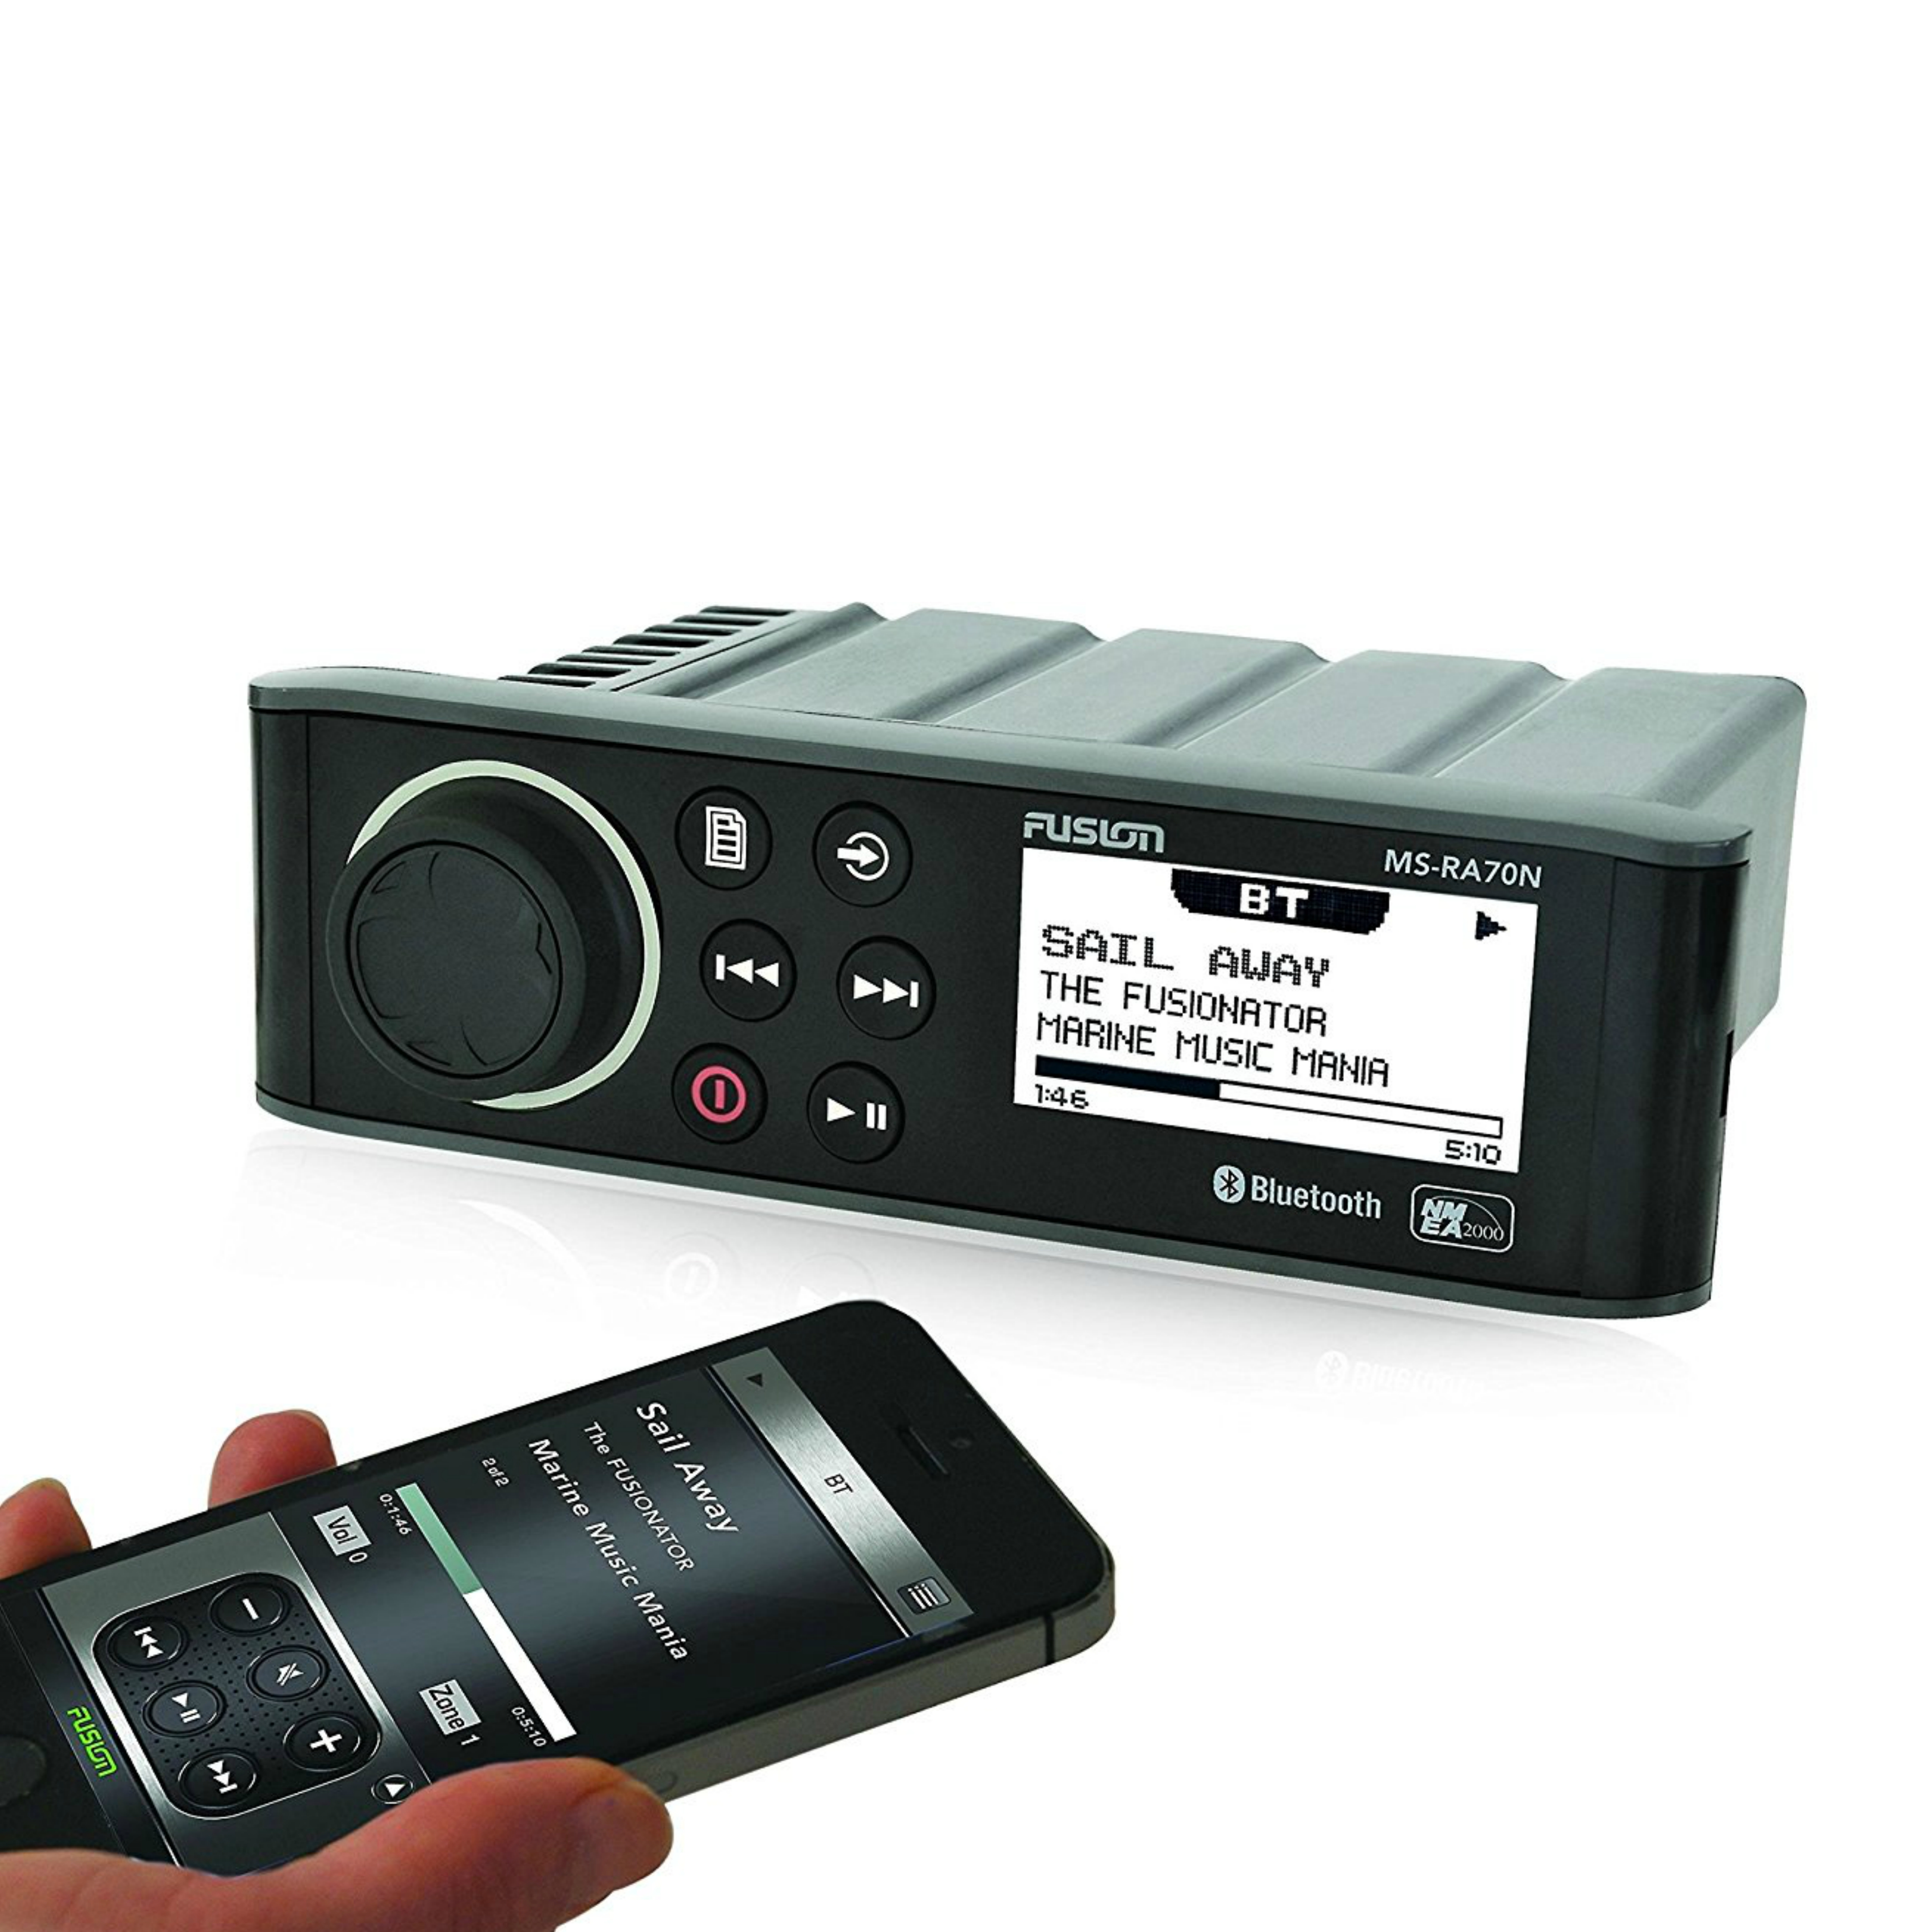 Fusion-RA70N|Radio Source Unit|Bluetooth Android iPhone iPod USB Connect|In Boat